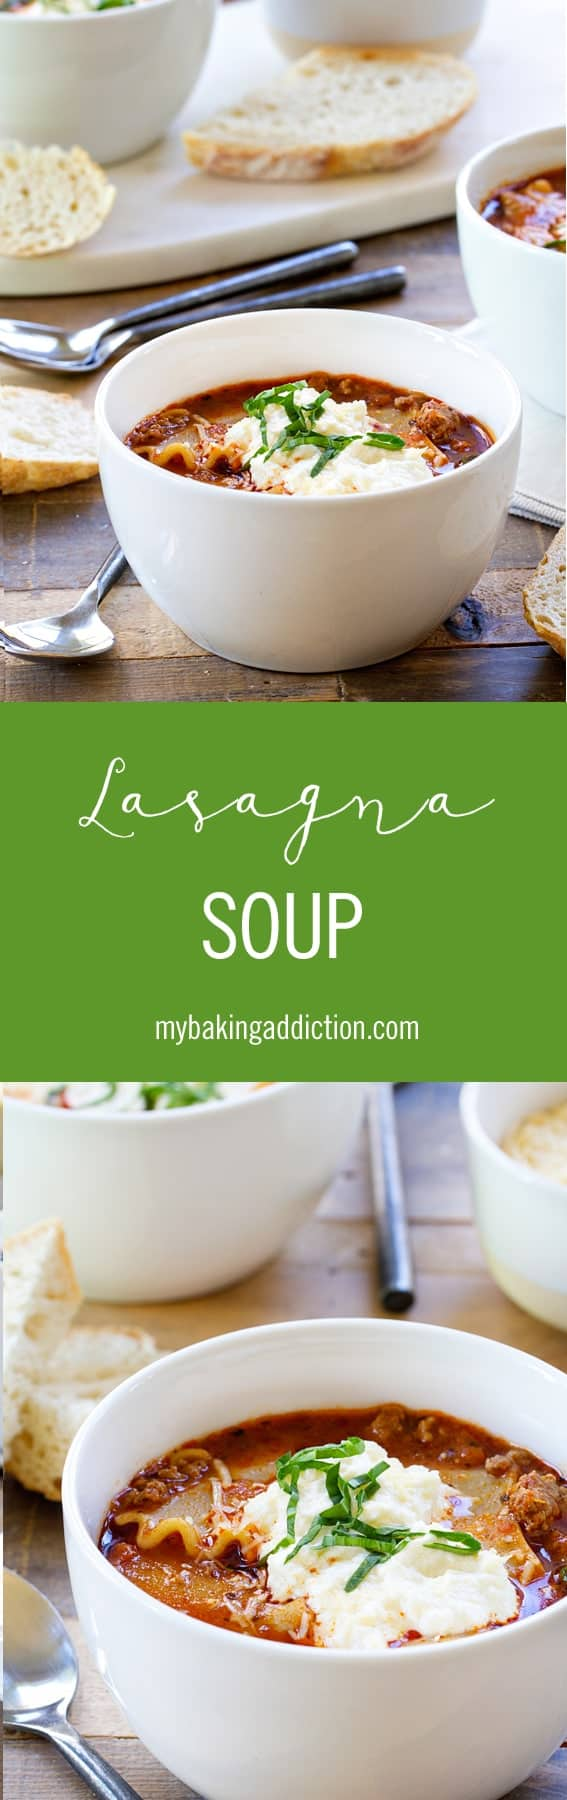 Lasagna soup is loaded with all the familiar flavors of lasagna in soup form. It's hearty, delicious, and sure to become a family favorite.